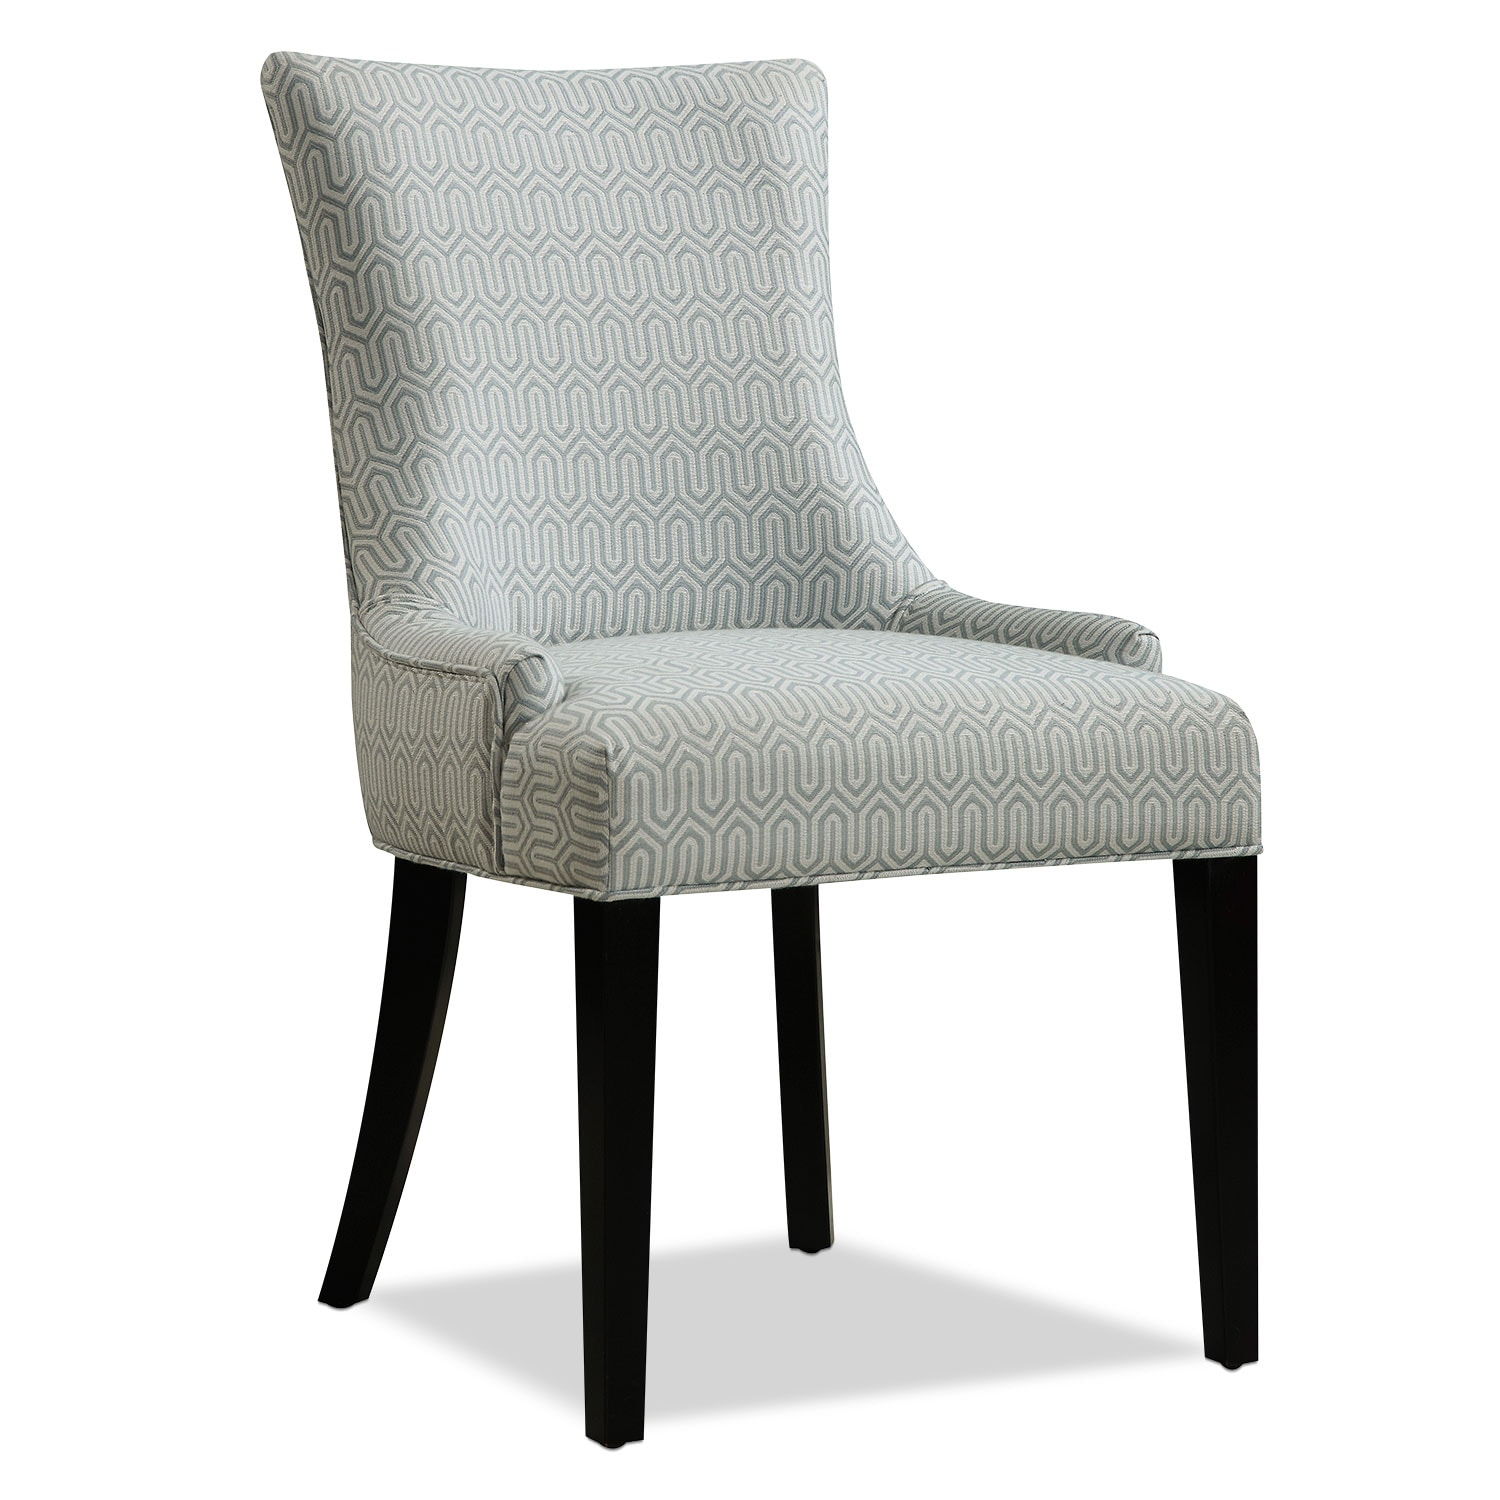 Accent and Occasional Furniture - Farren Accent Chair - Mist